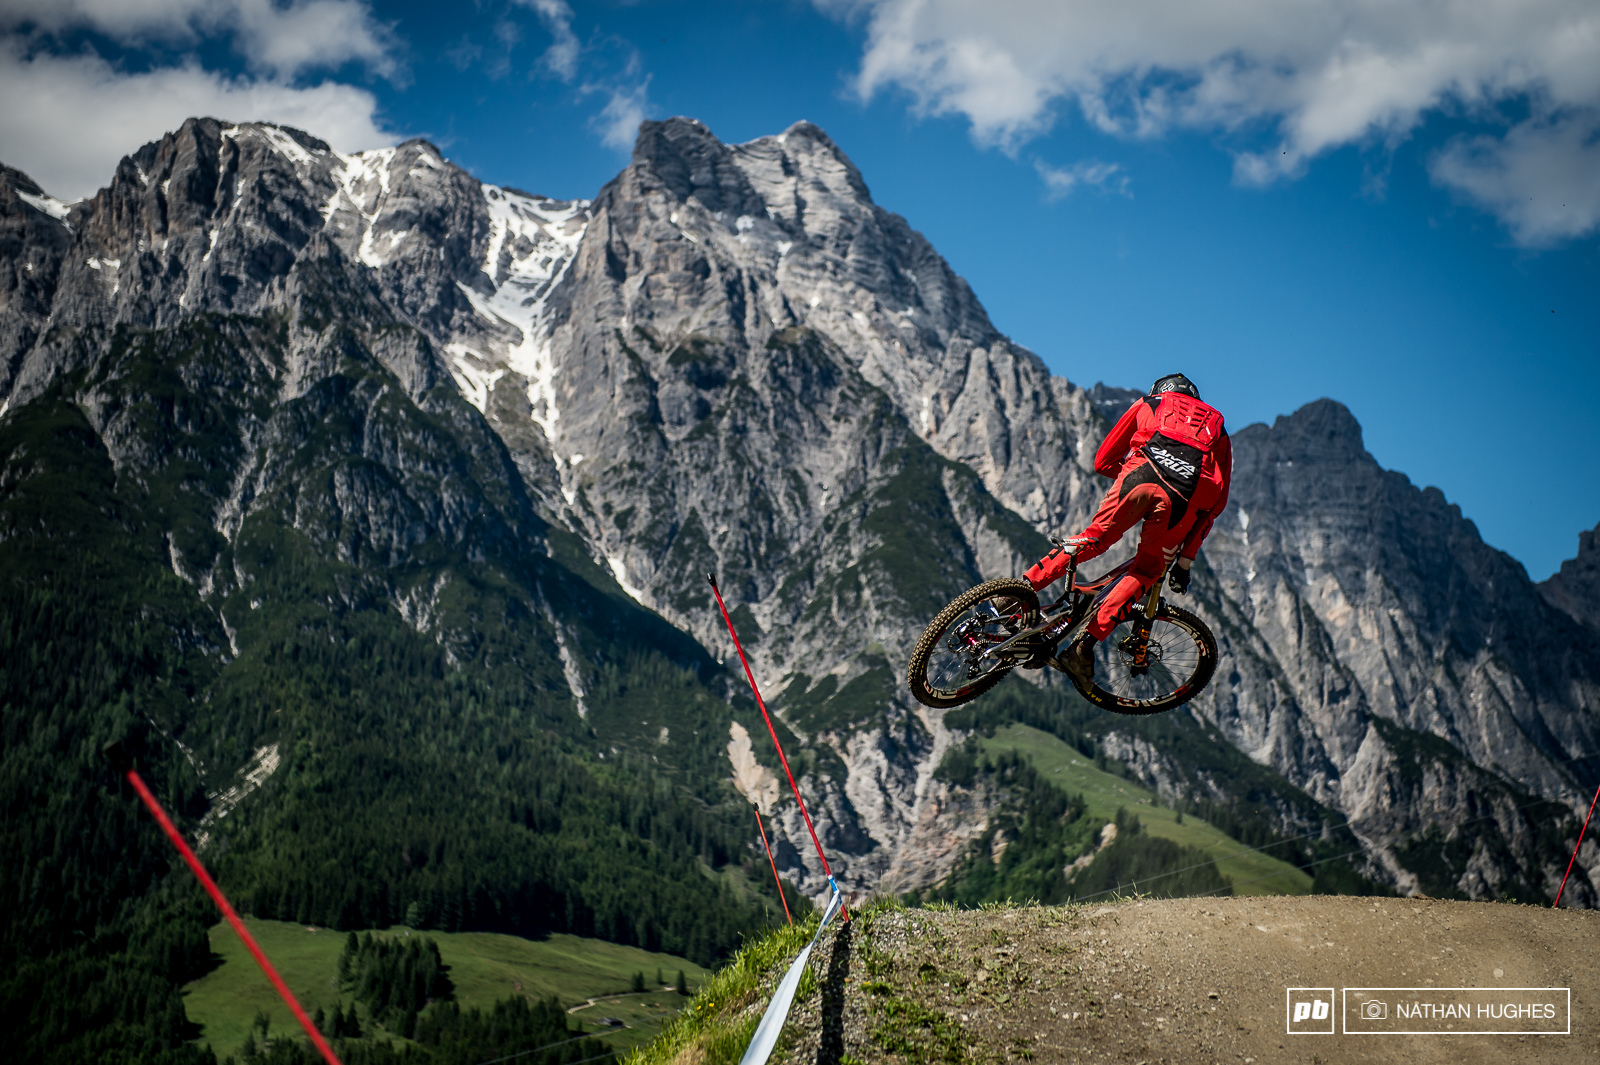 Josh Bryceland speed of a mongoose style of a rat in front of Leogang s mighty peaks.